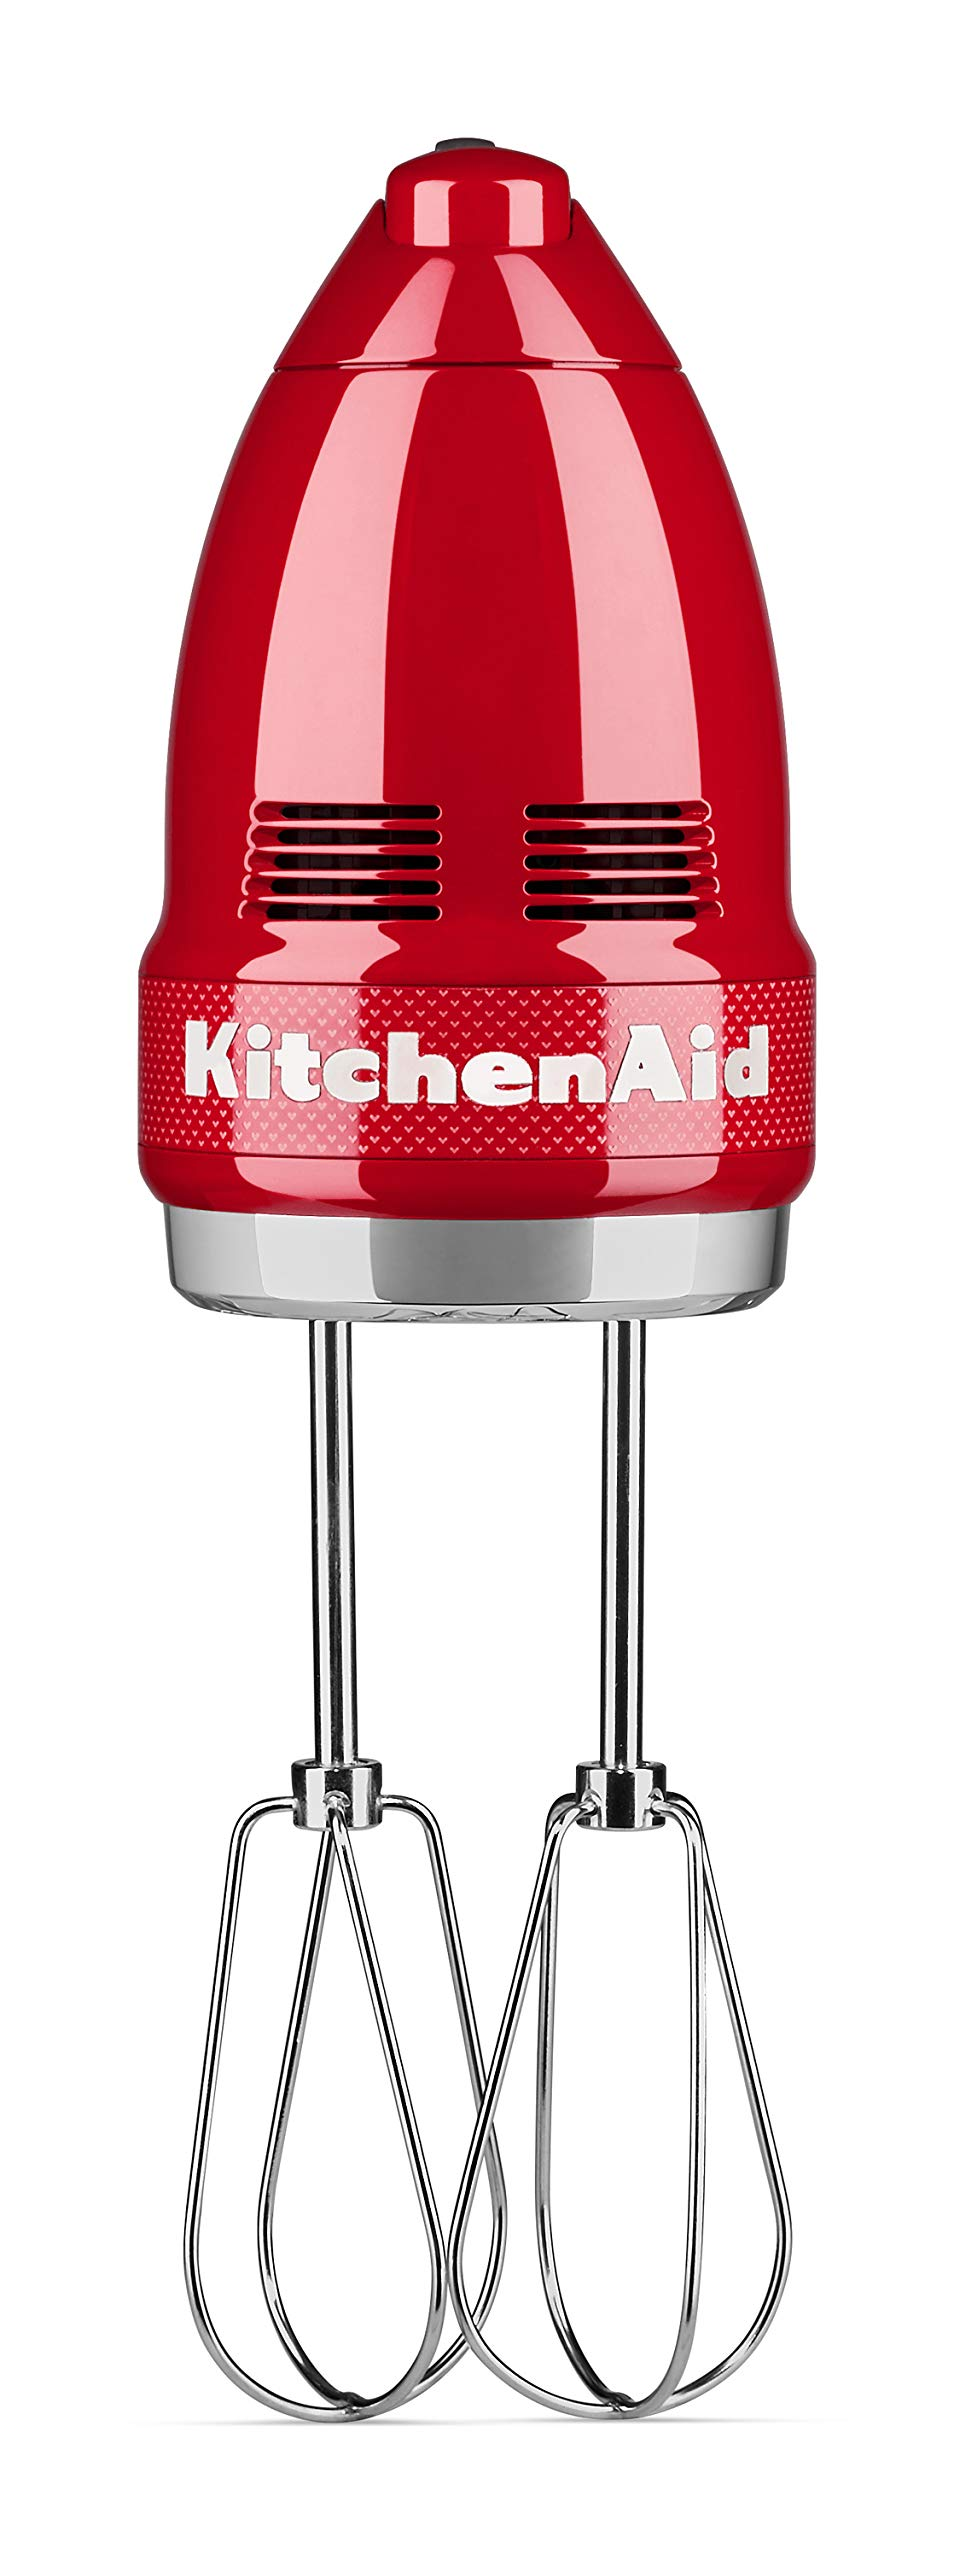 KitchenAid KHM7210QHSD 100 Year Limited Edition Queen of Hearts Hand Mixer, 7 Speed, Passion Red by KitchenAid (Image #2)